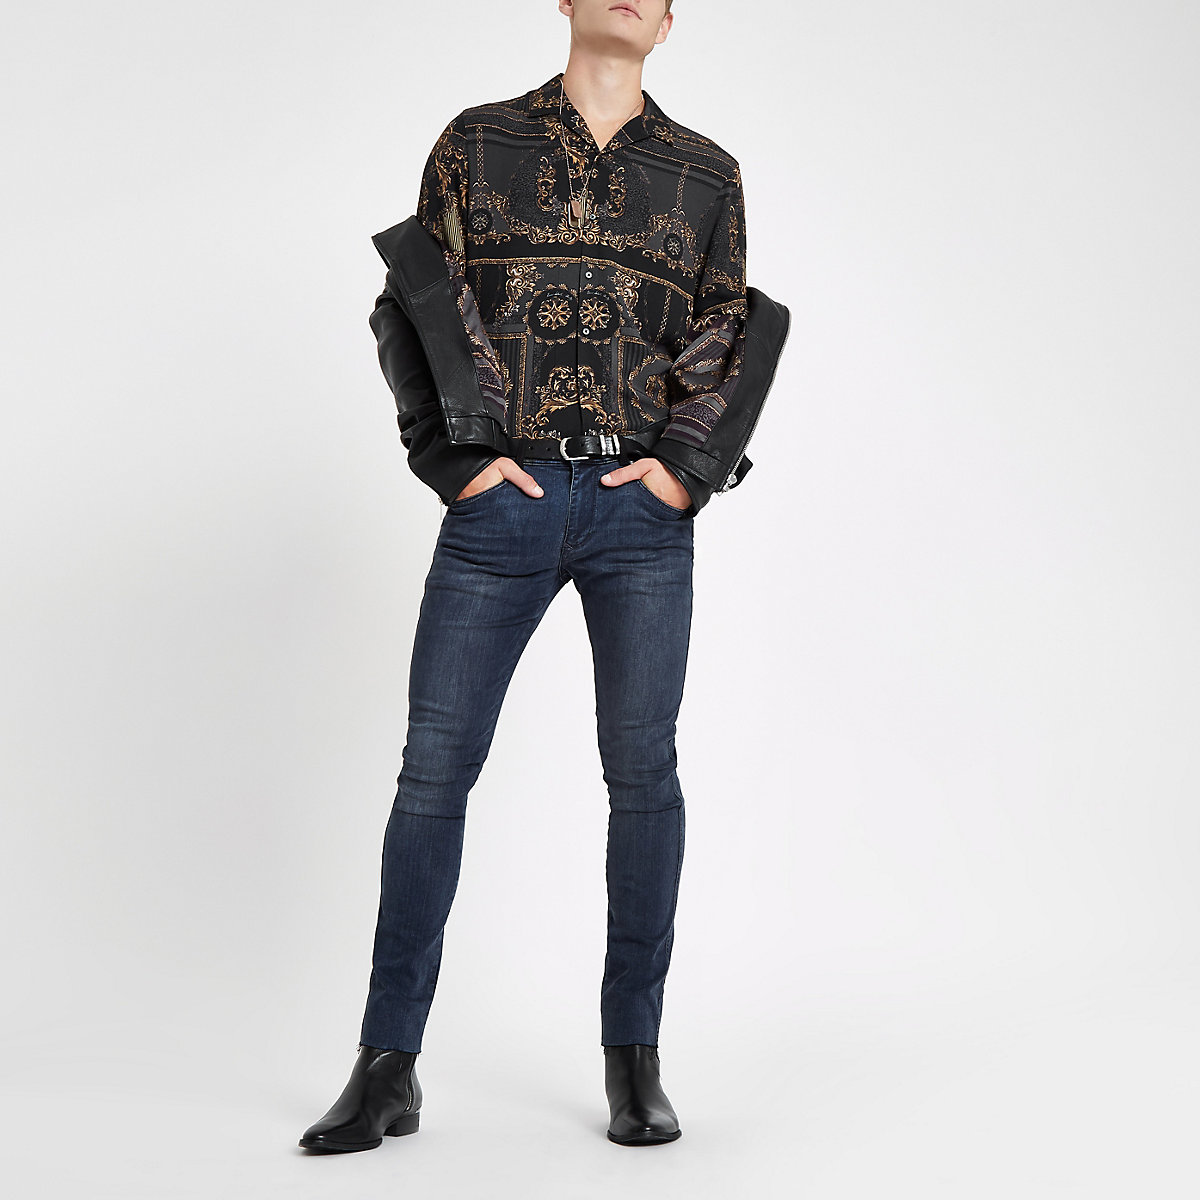 RI 30 black baroque print shirt